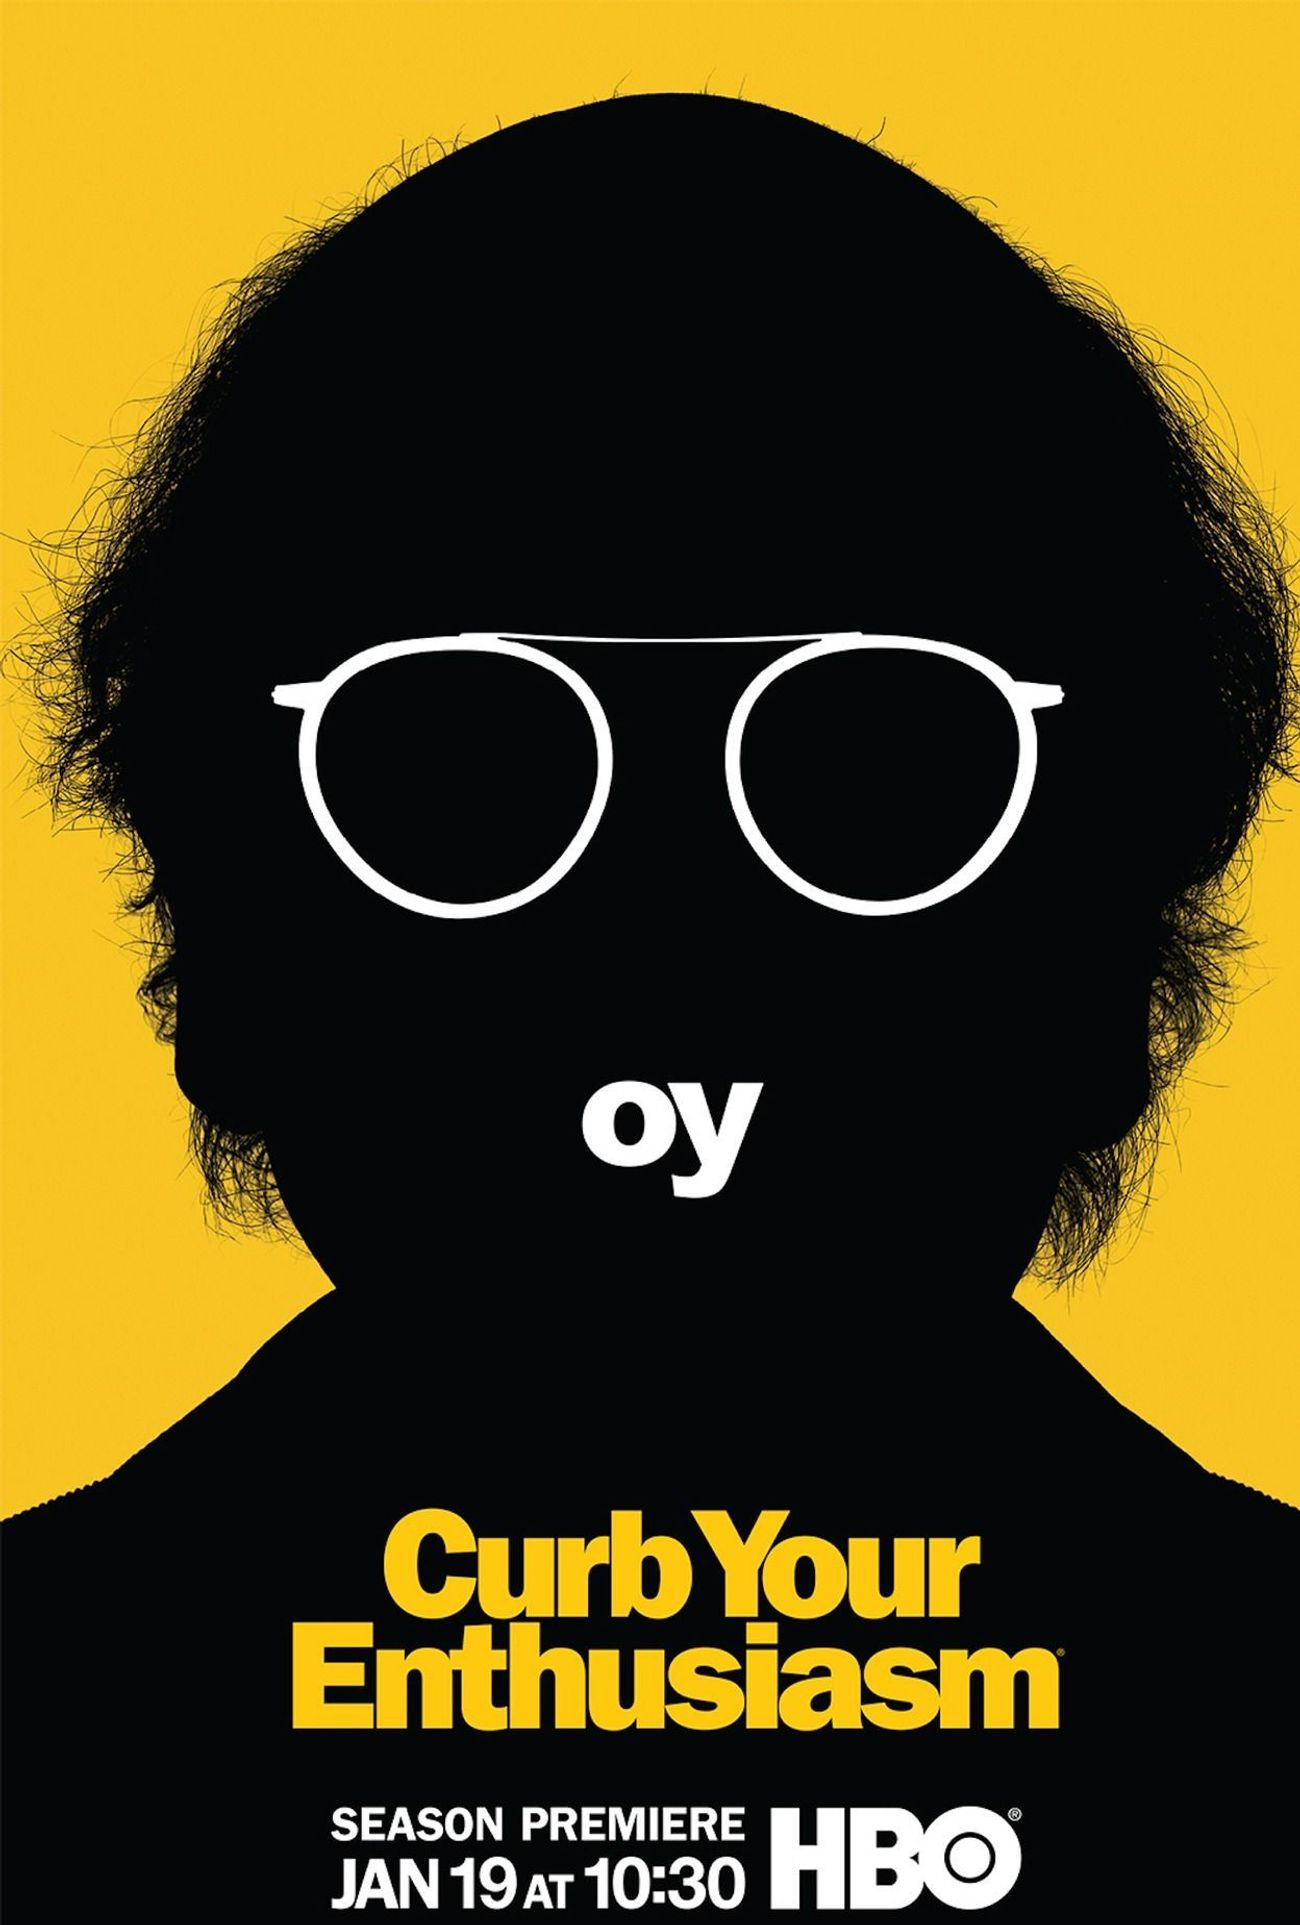 Oy — Why those 'Curb Your Enthusiasm' posters are pretty, pretty bad